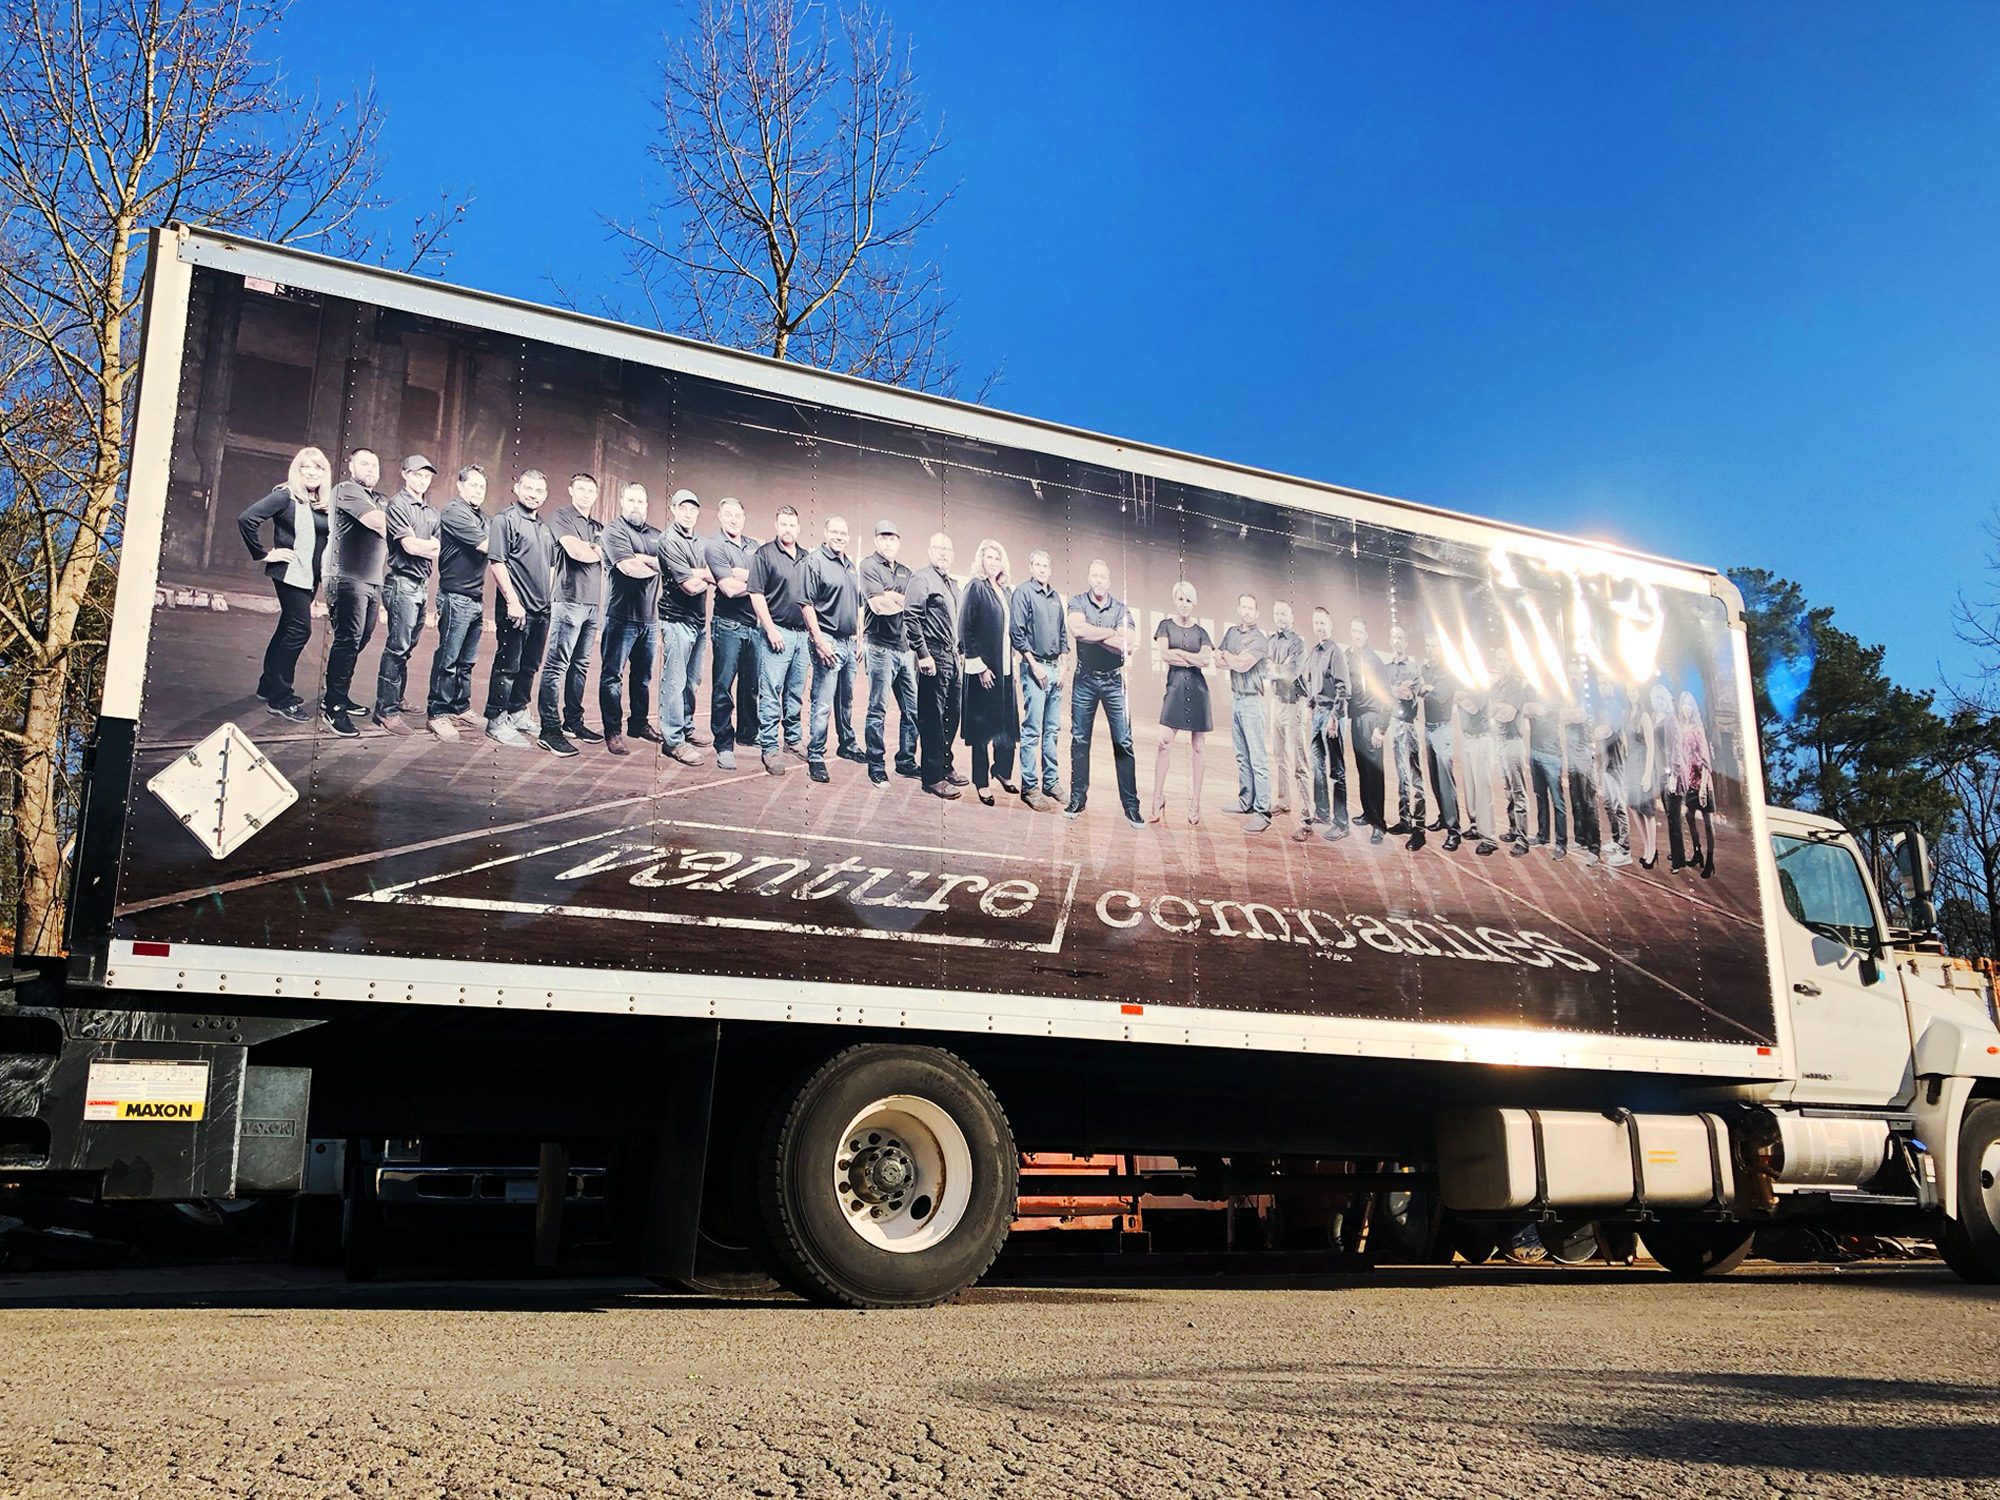 Large format photos on a trailer.